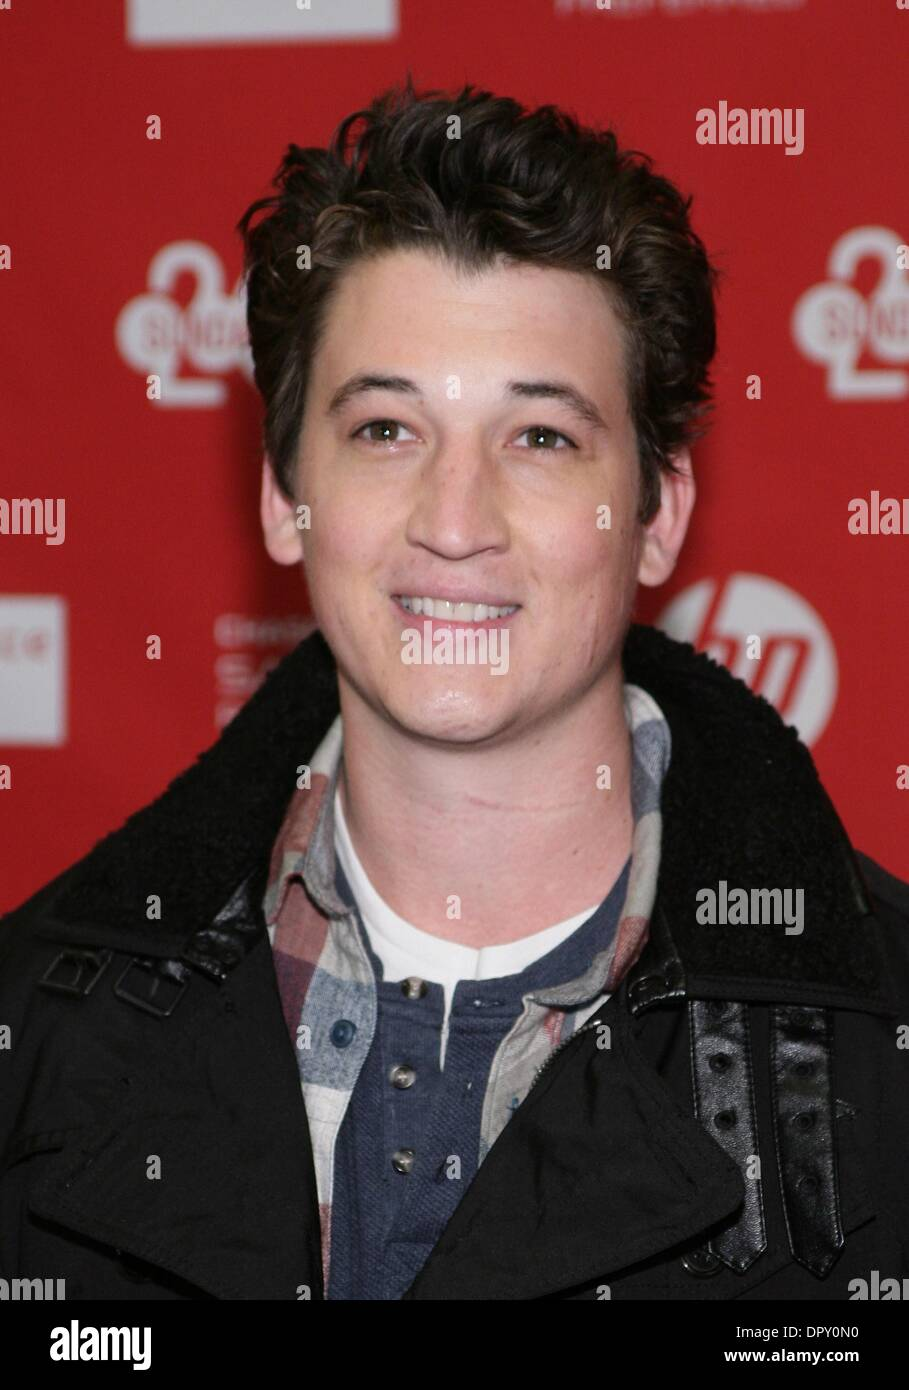 Park City, UT, USA  16th Jan, 2014  Miles Teller at arrivals